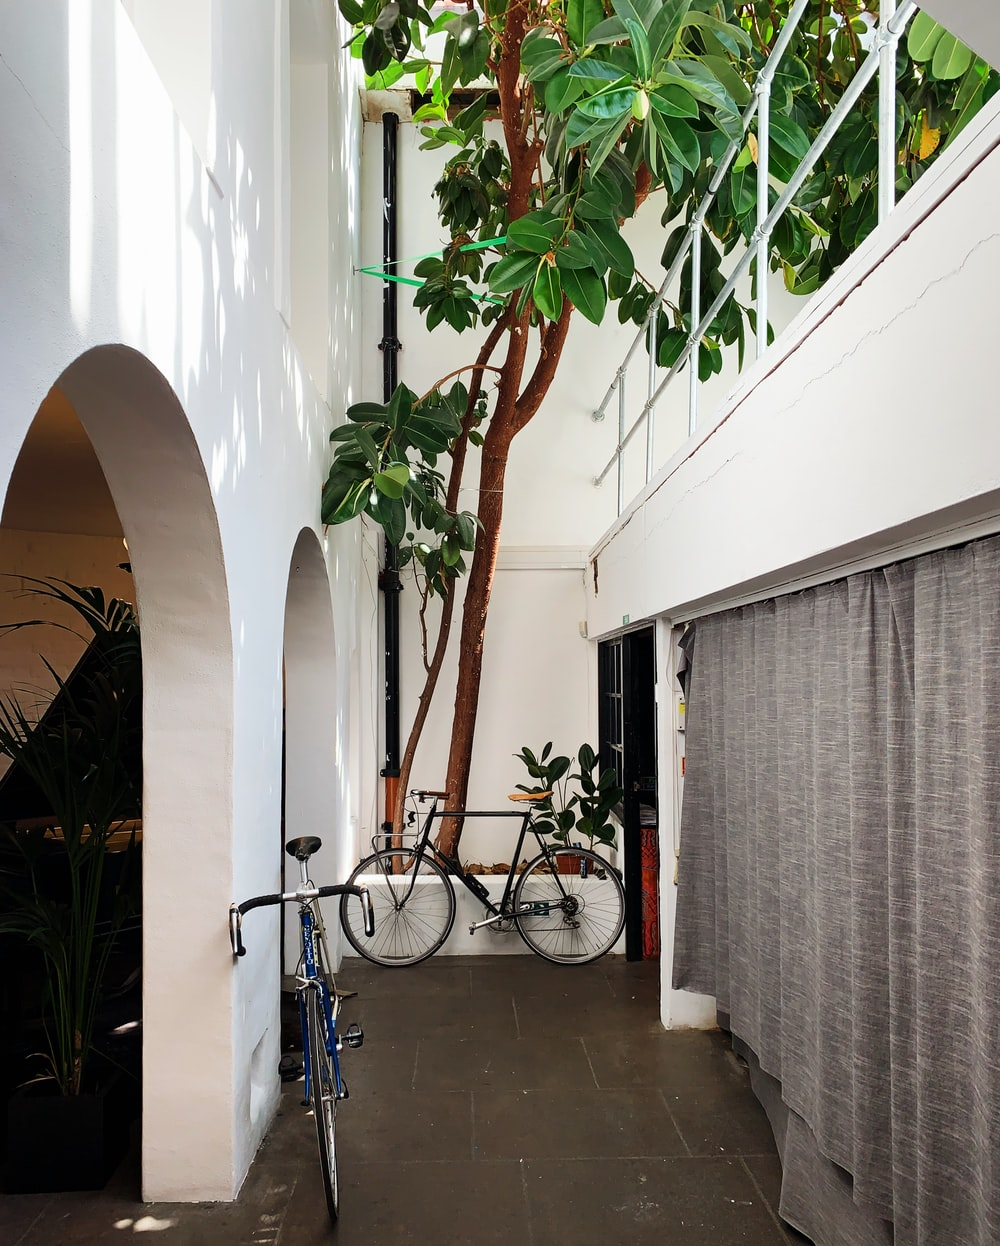 black bicycle parked on white concrete building